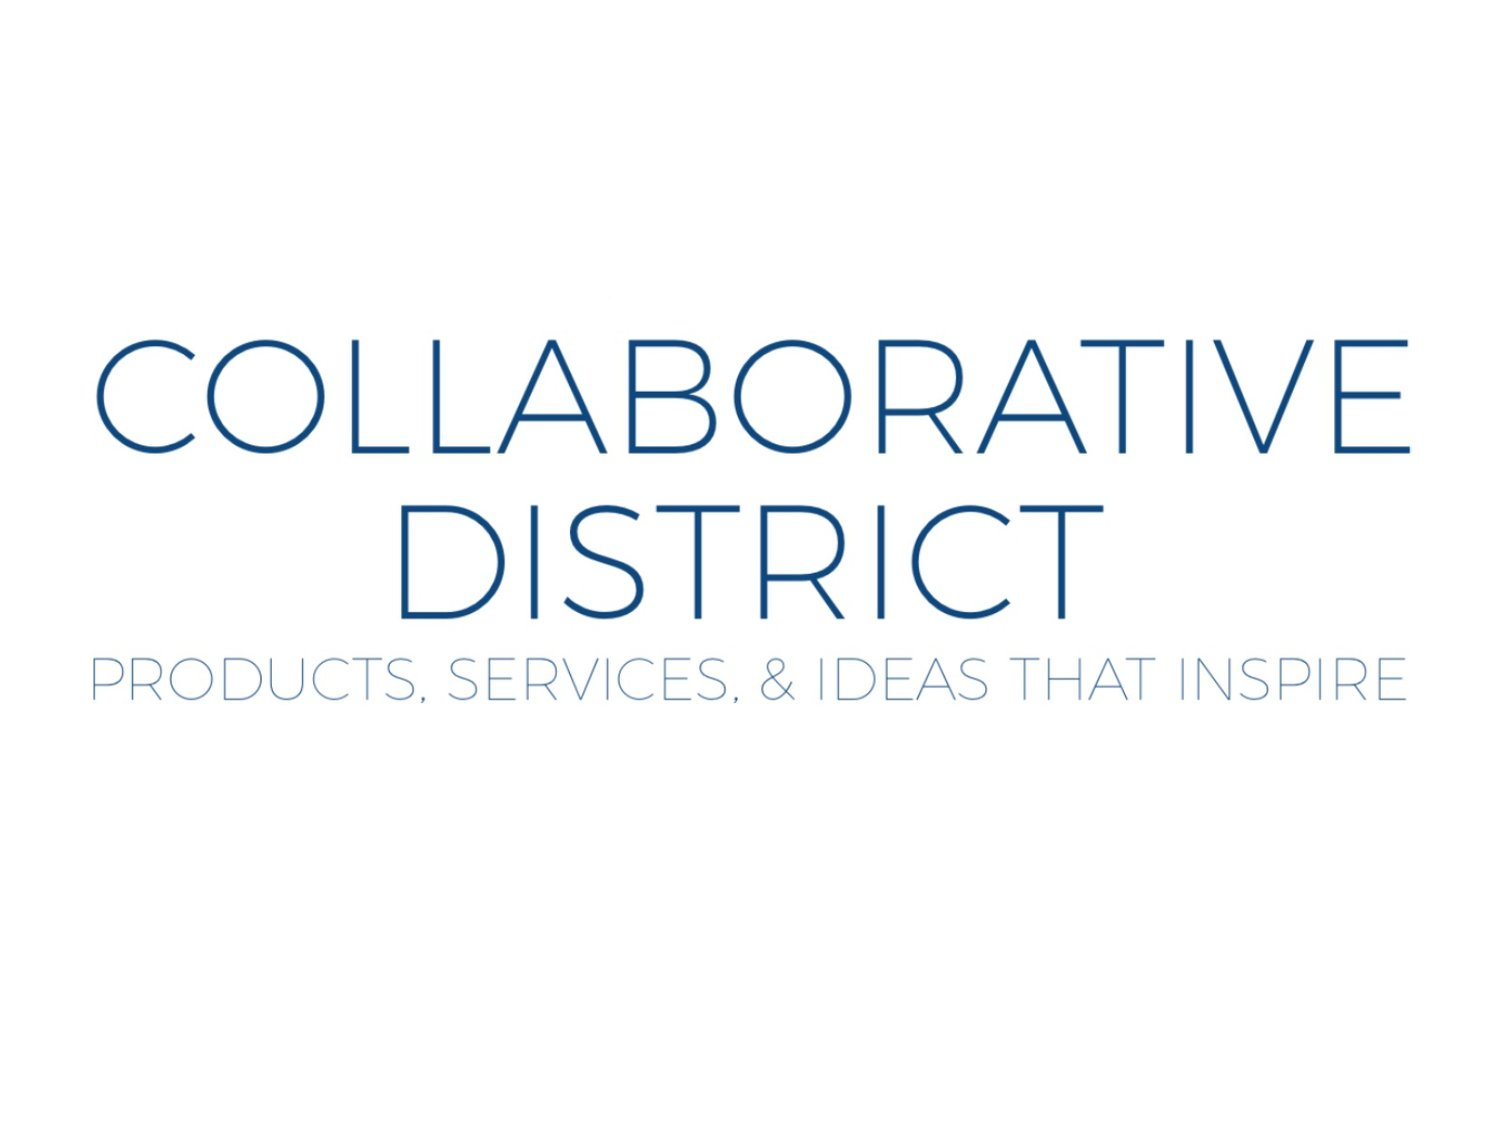 Collaborative District